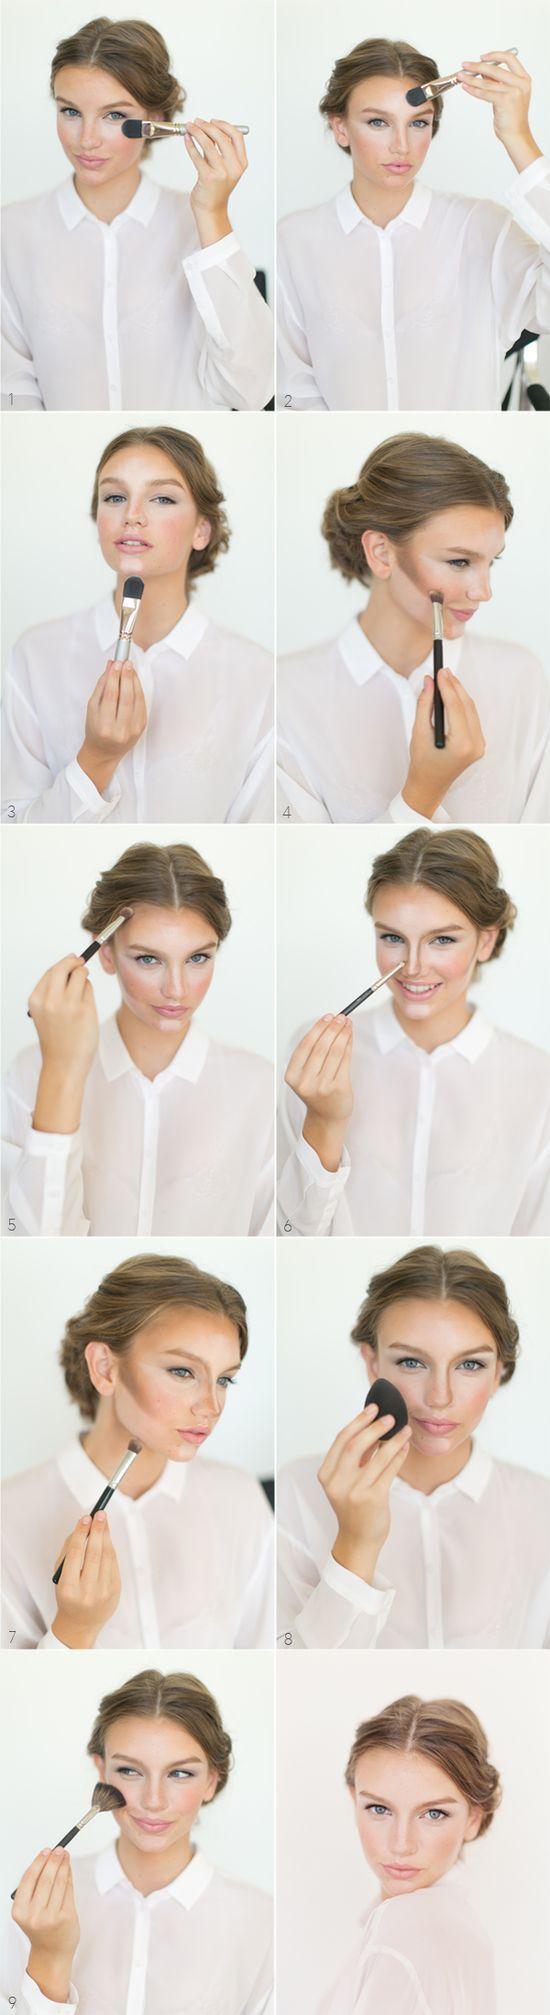 Cheekbone makeup technique.